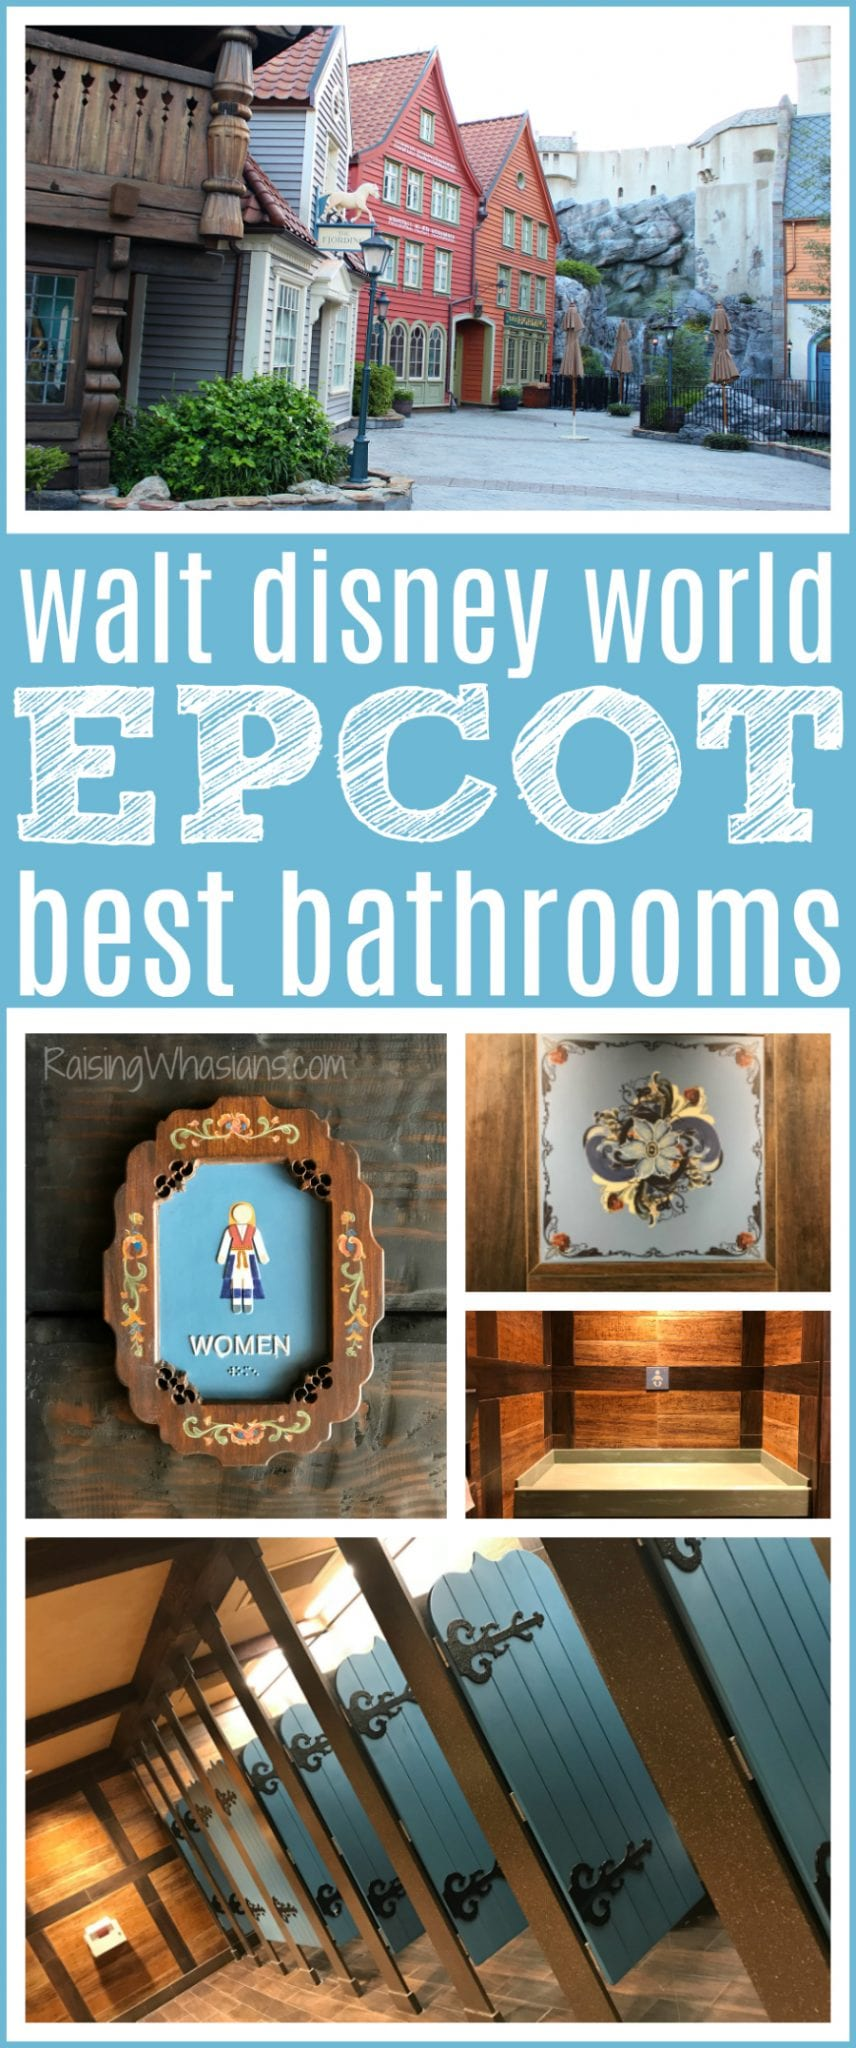 Walt Disney world best bathrooms